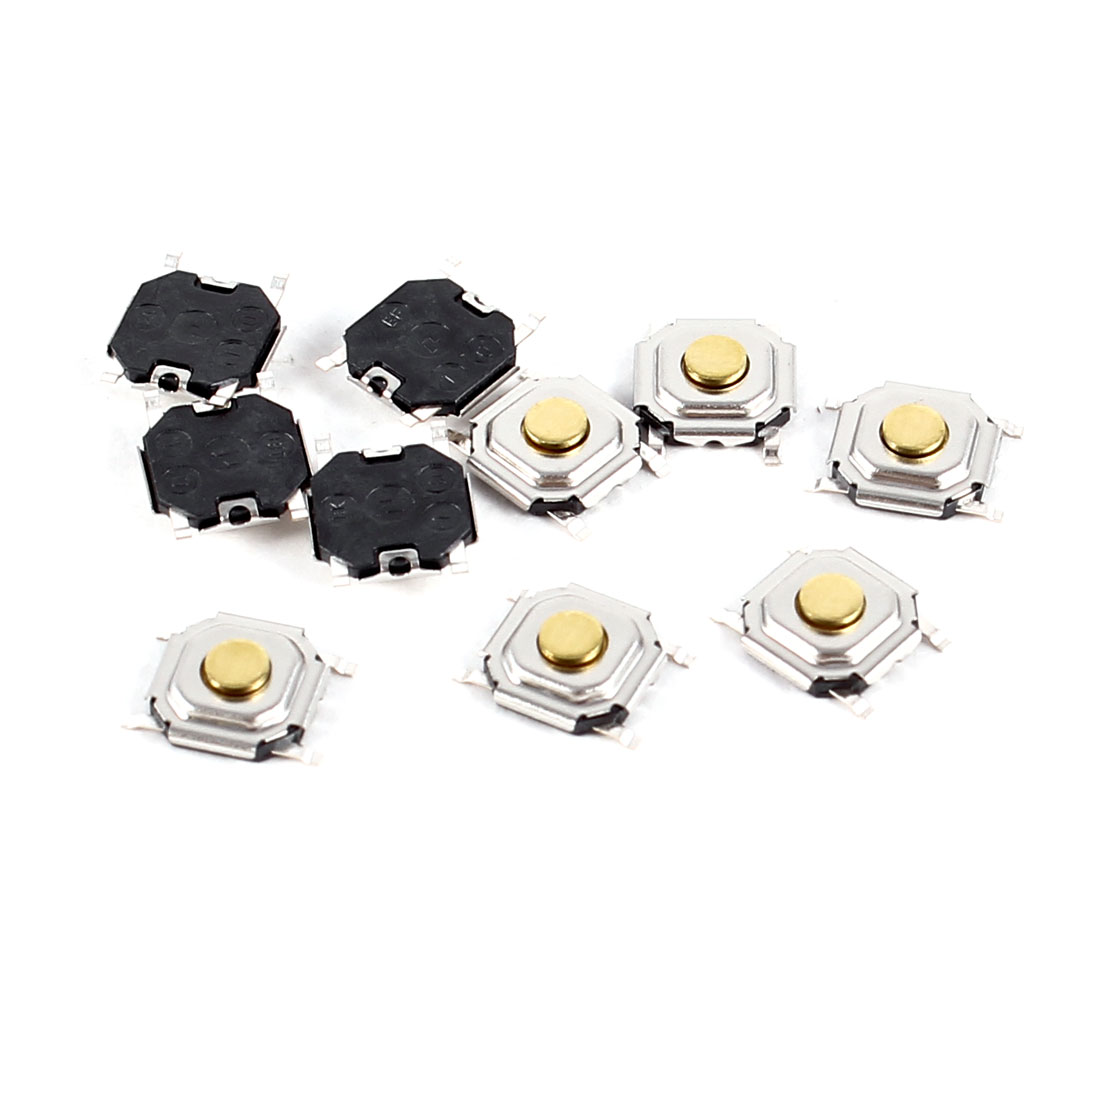 10Pcs DC5V 5mA 500000 Cycles Surface Mount Tact Switches 4 x 4 x 1.5mm